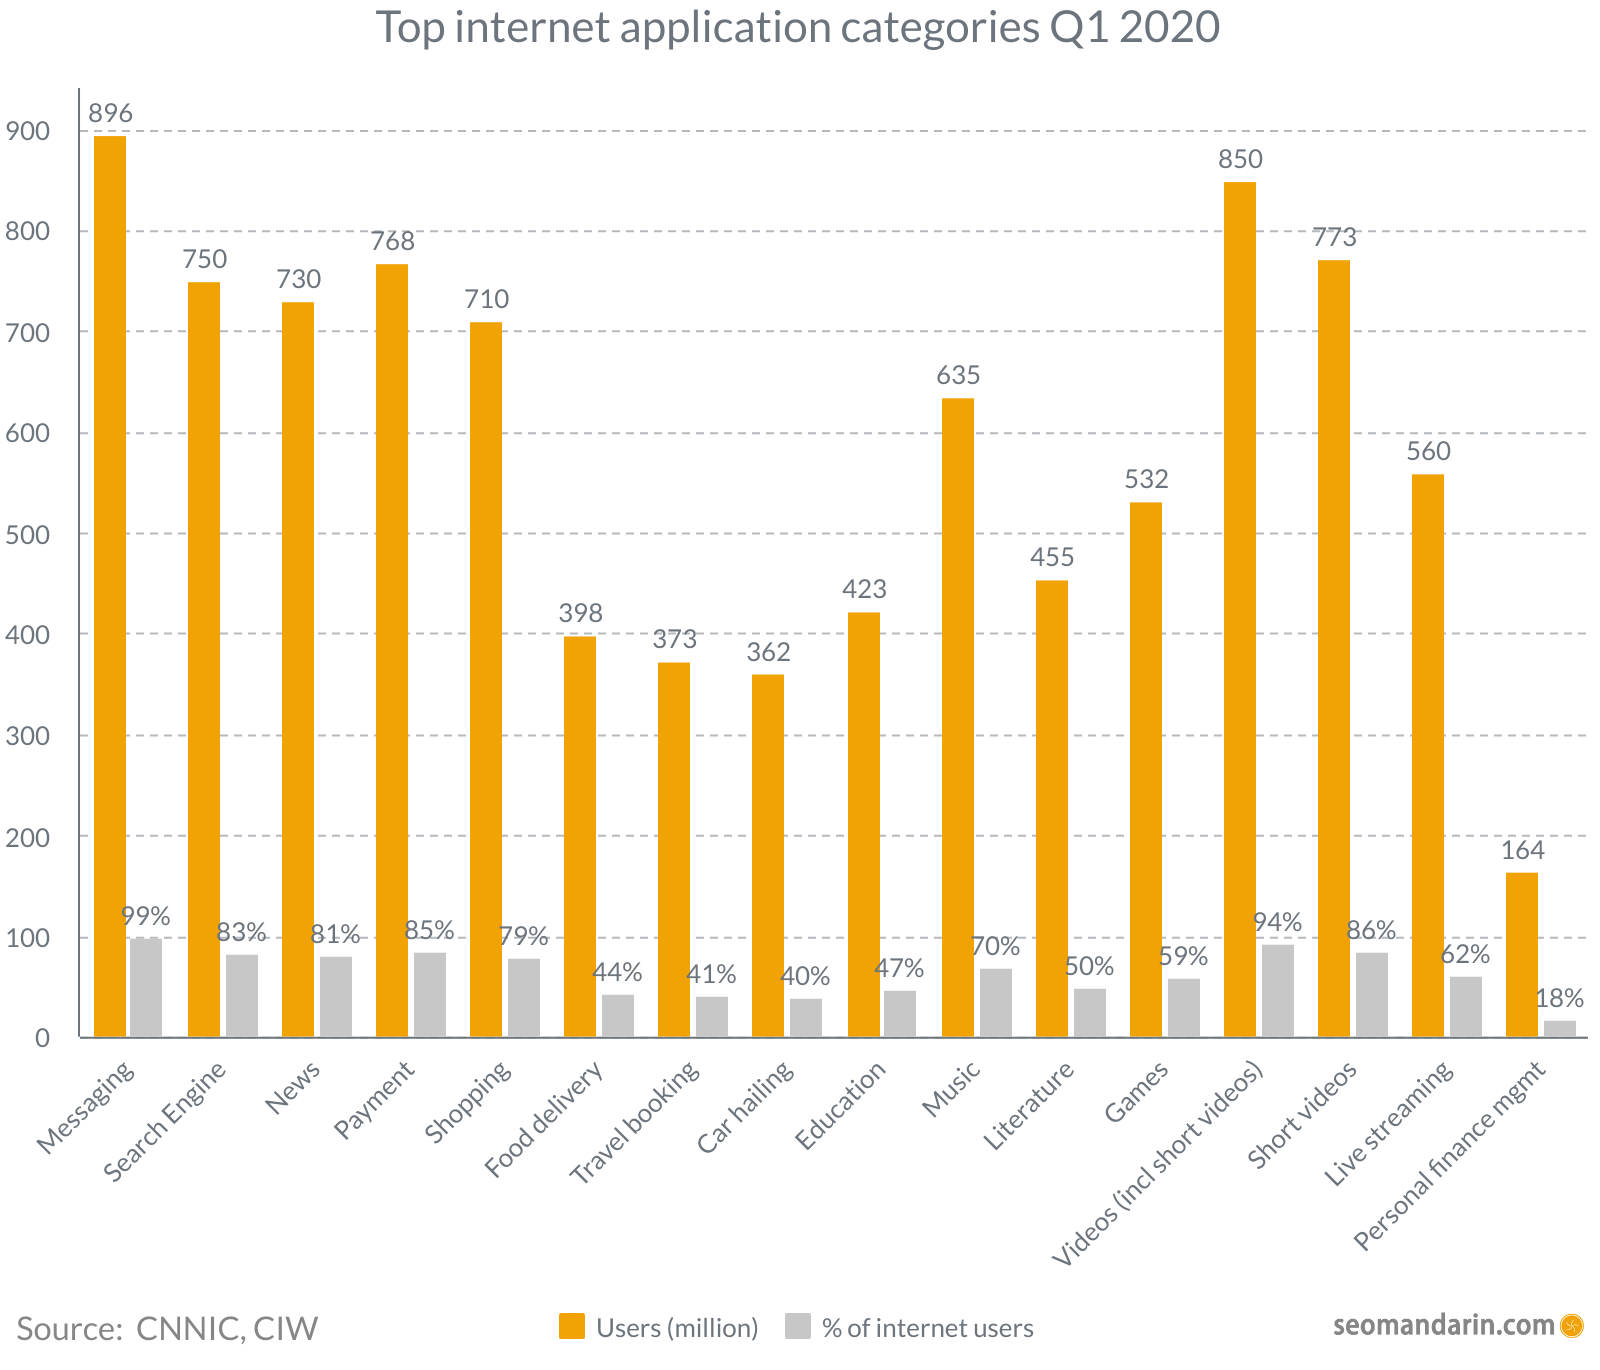 China Top internet application categories 2020